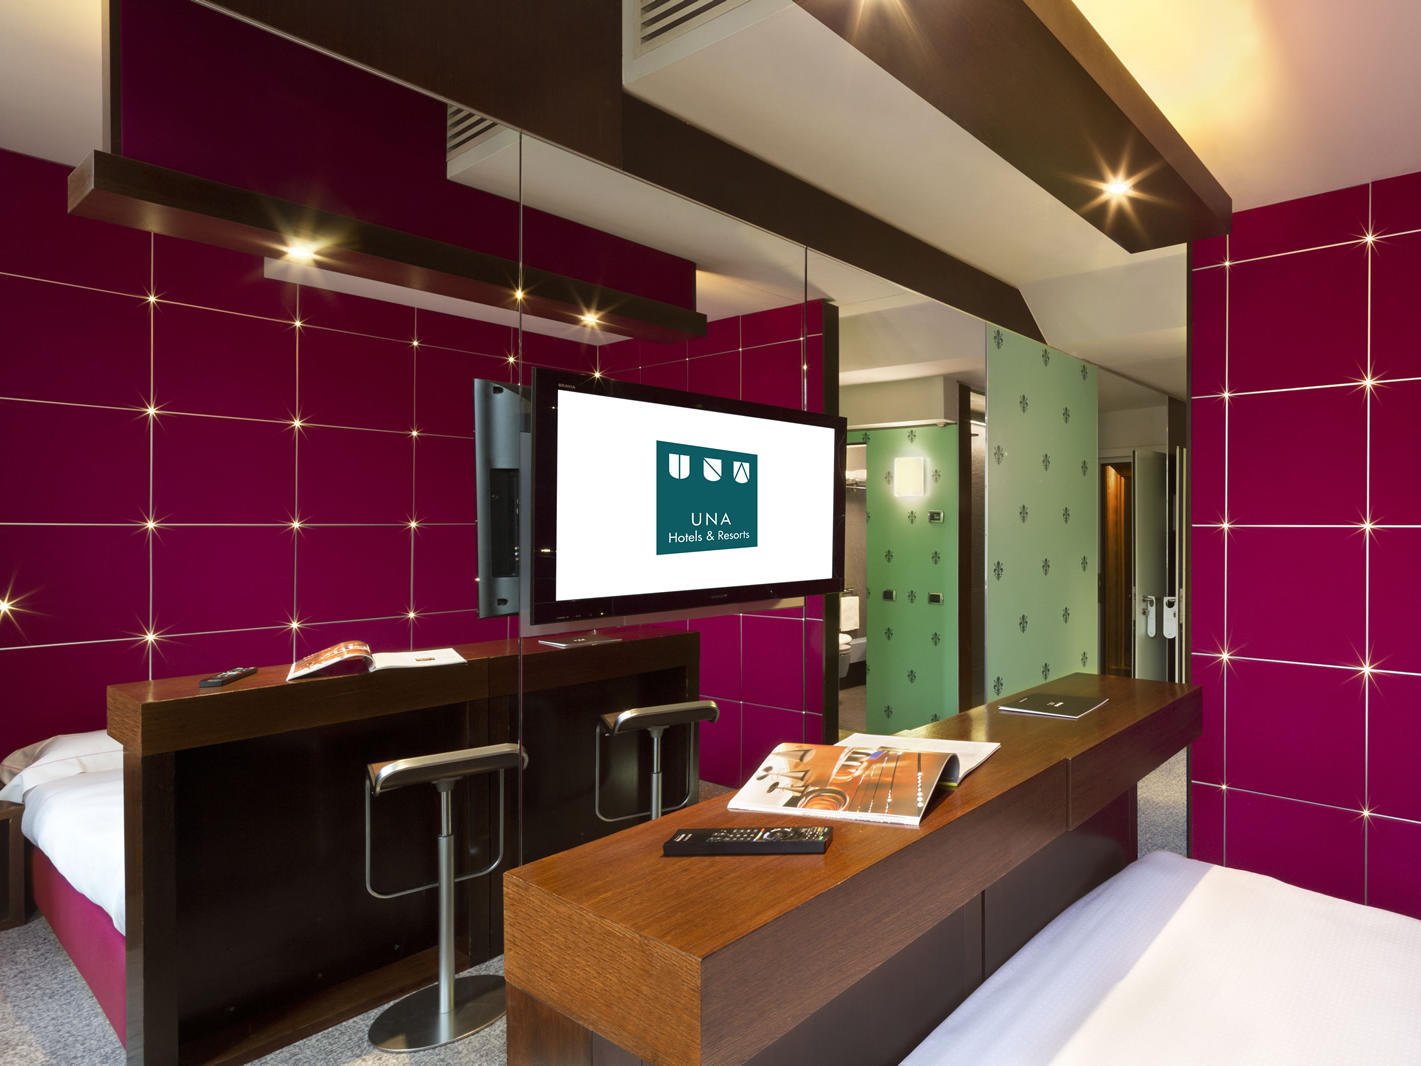 Albergo Firenze Florence Italy Unahotels Vittoria Firenze Design Hotel Florence Unahotels